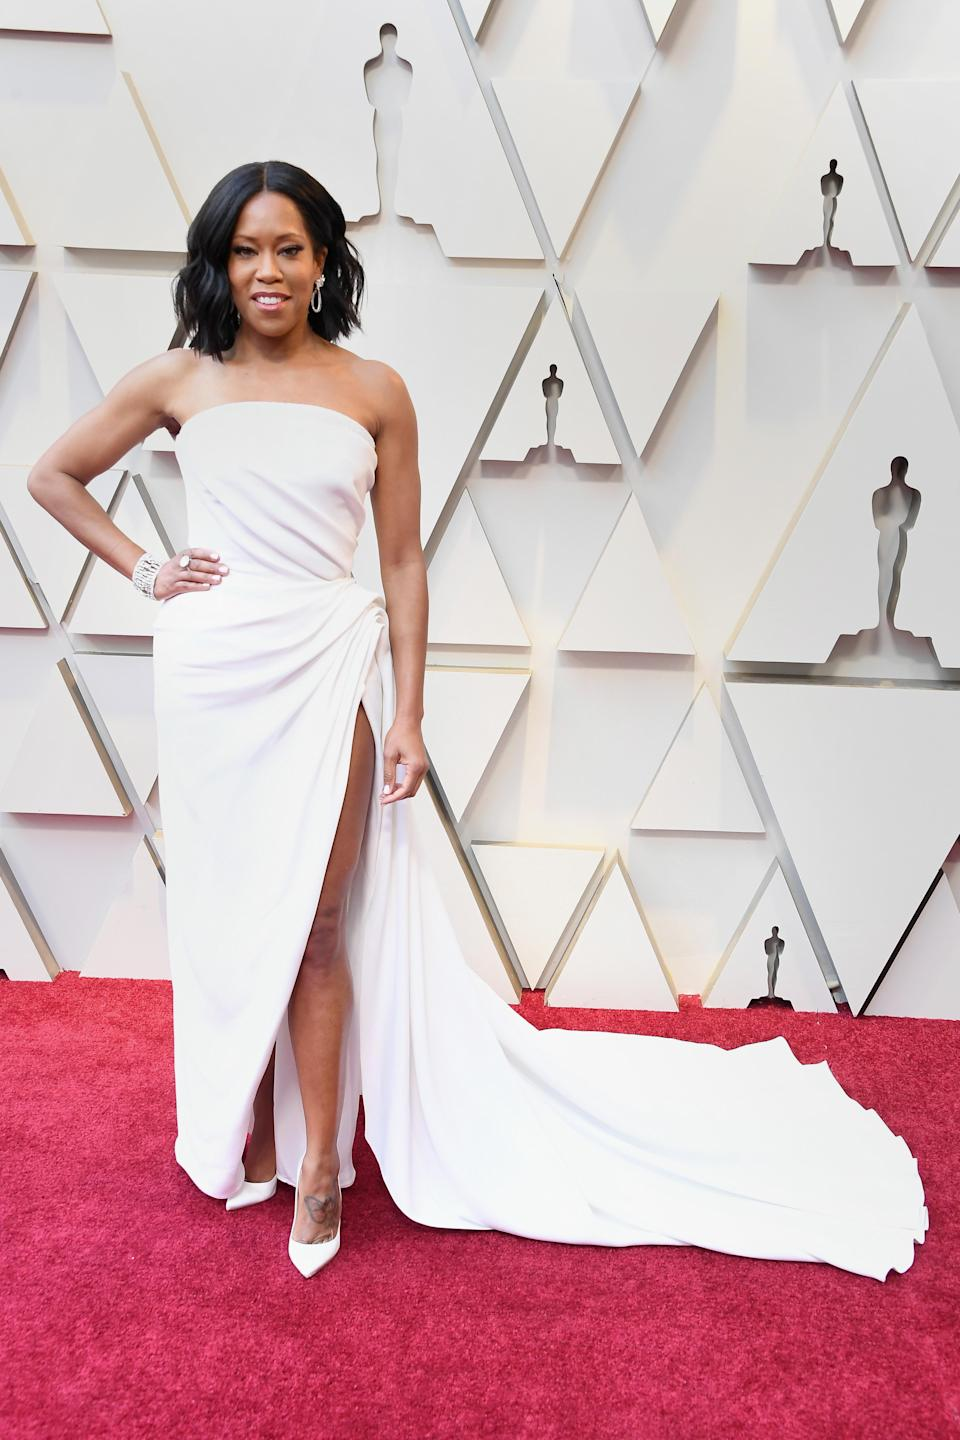 <p>The Best Supporting Actress nominee looked angelic in a white gown with a dramatic train by Oscar de la Renta. (Image via Getty Images) </p>